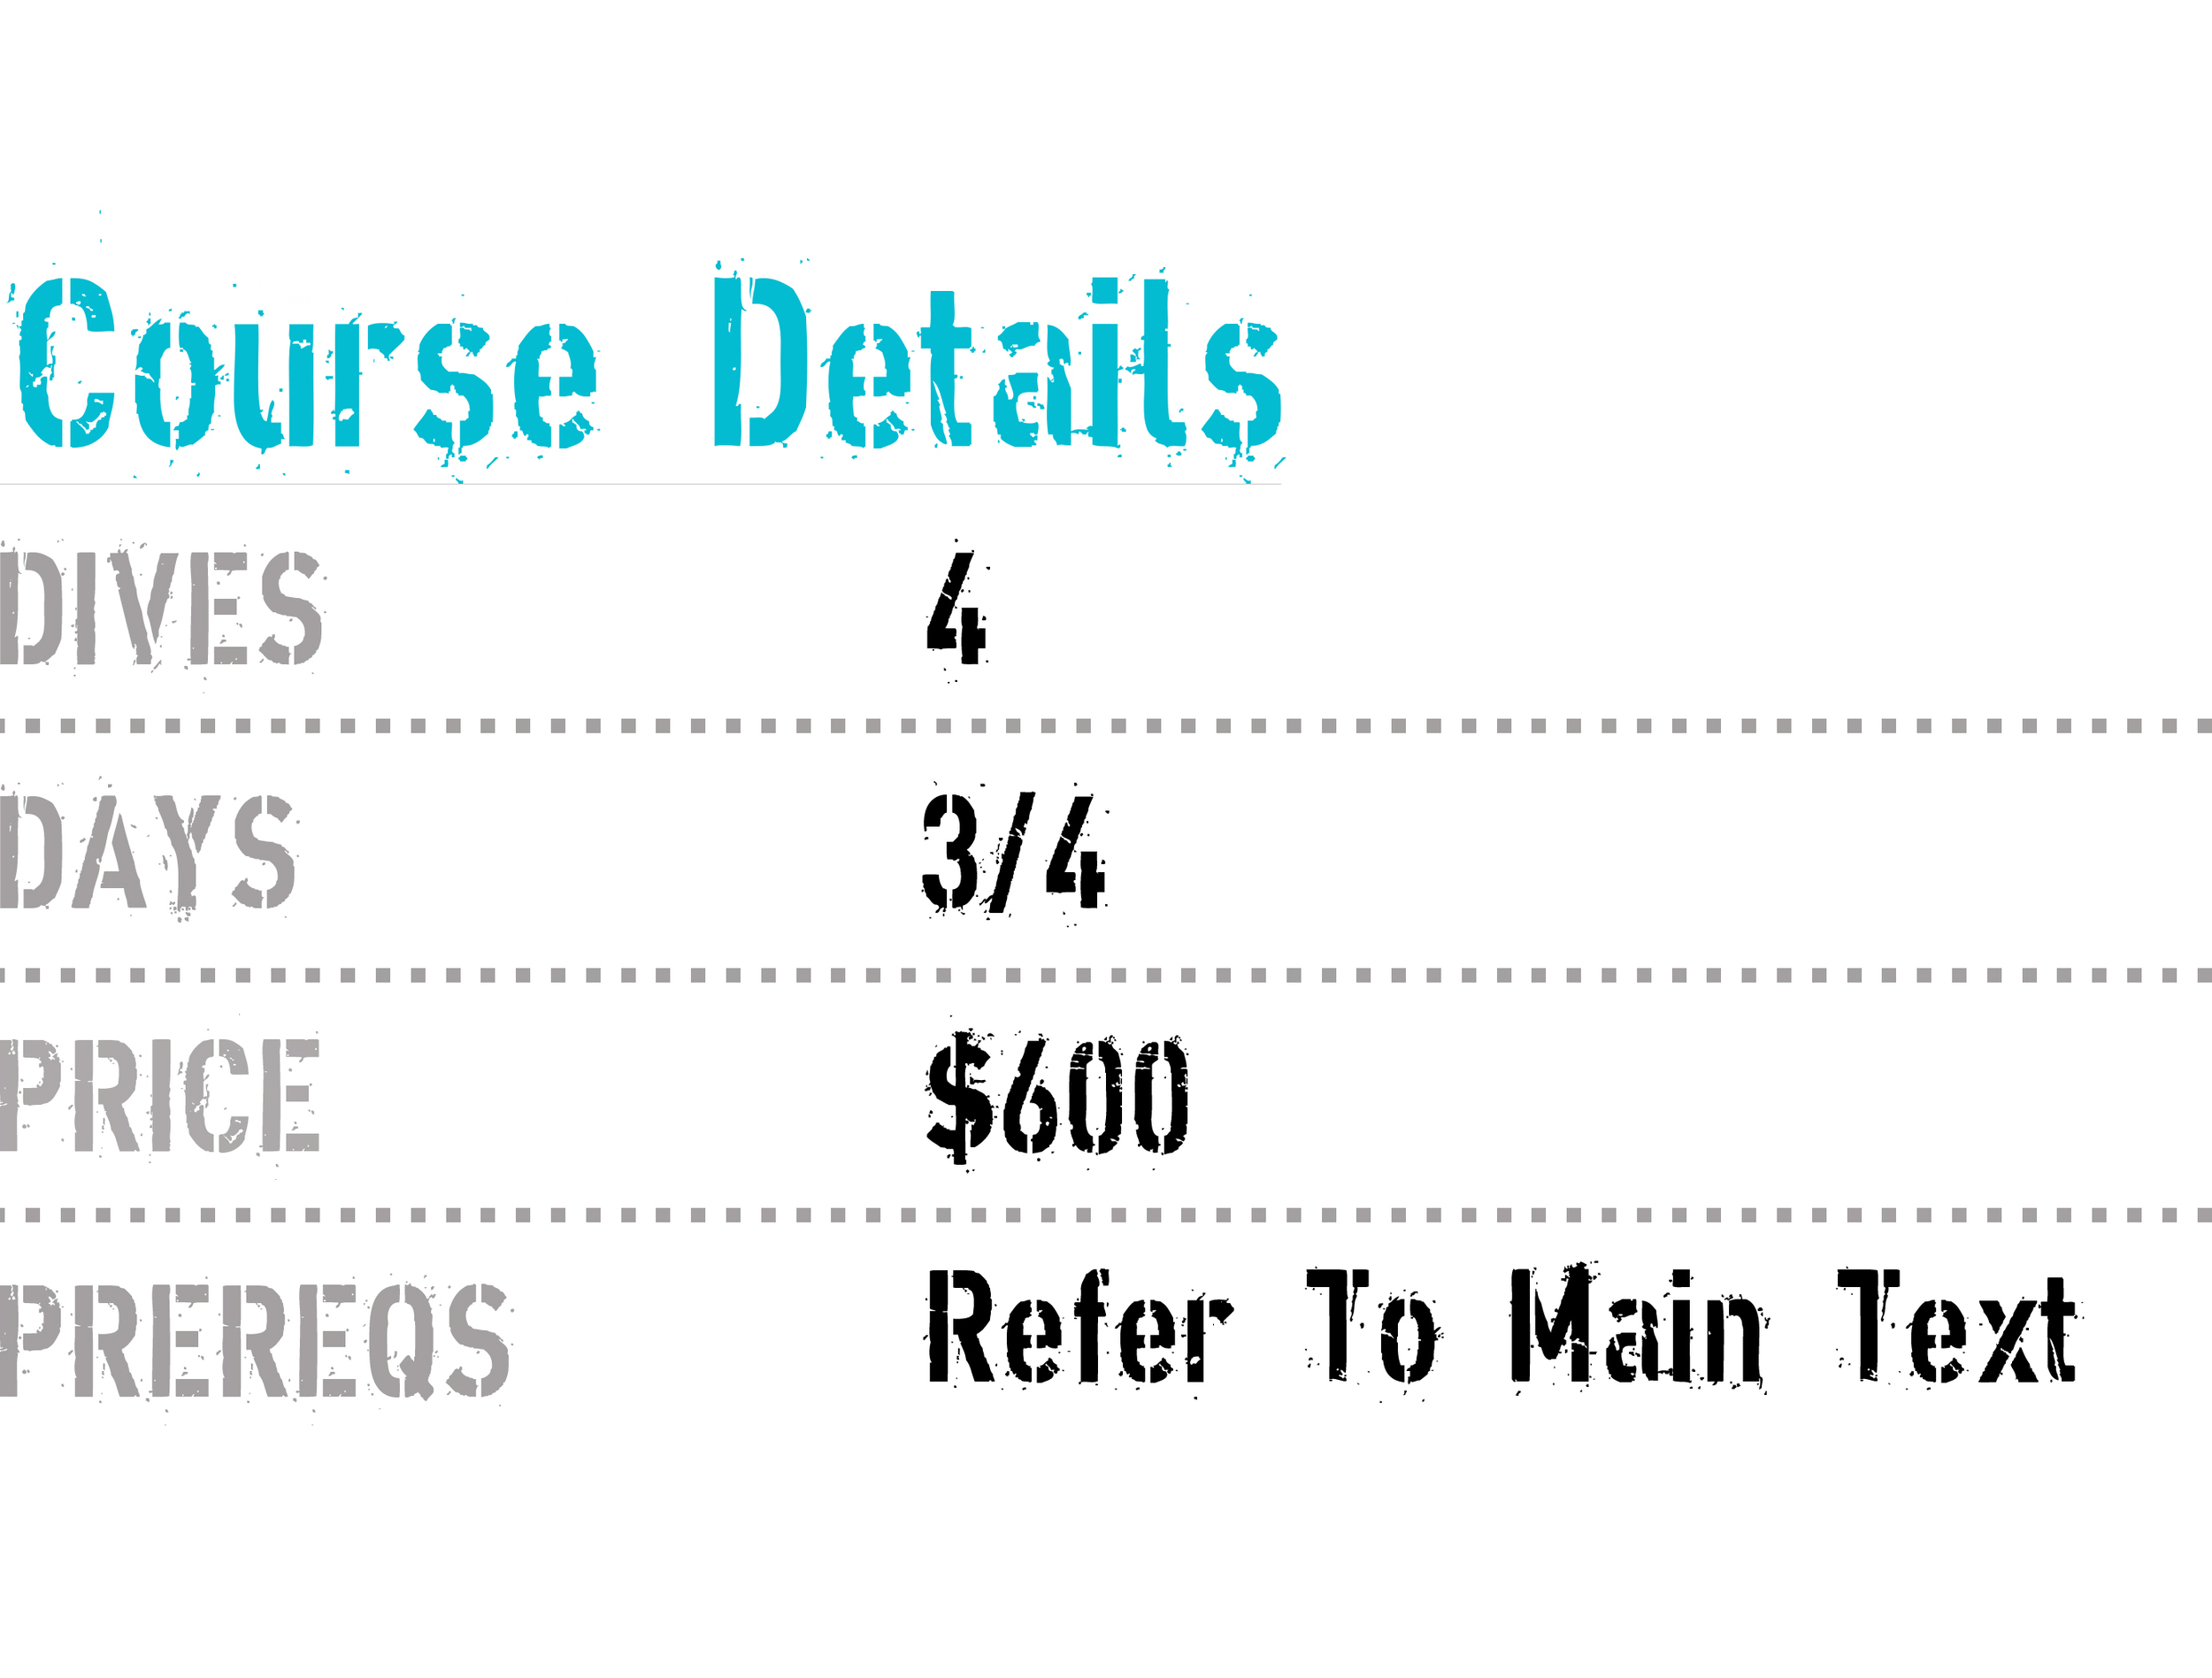 this image shows the price list for TDI extended range course with coconut tree divers and roatan tec center.